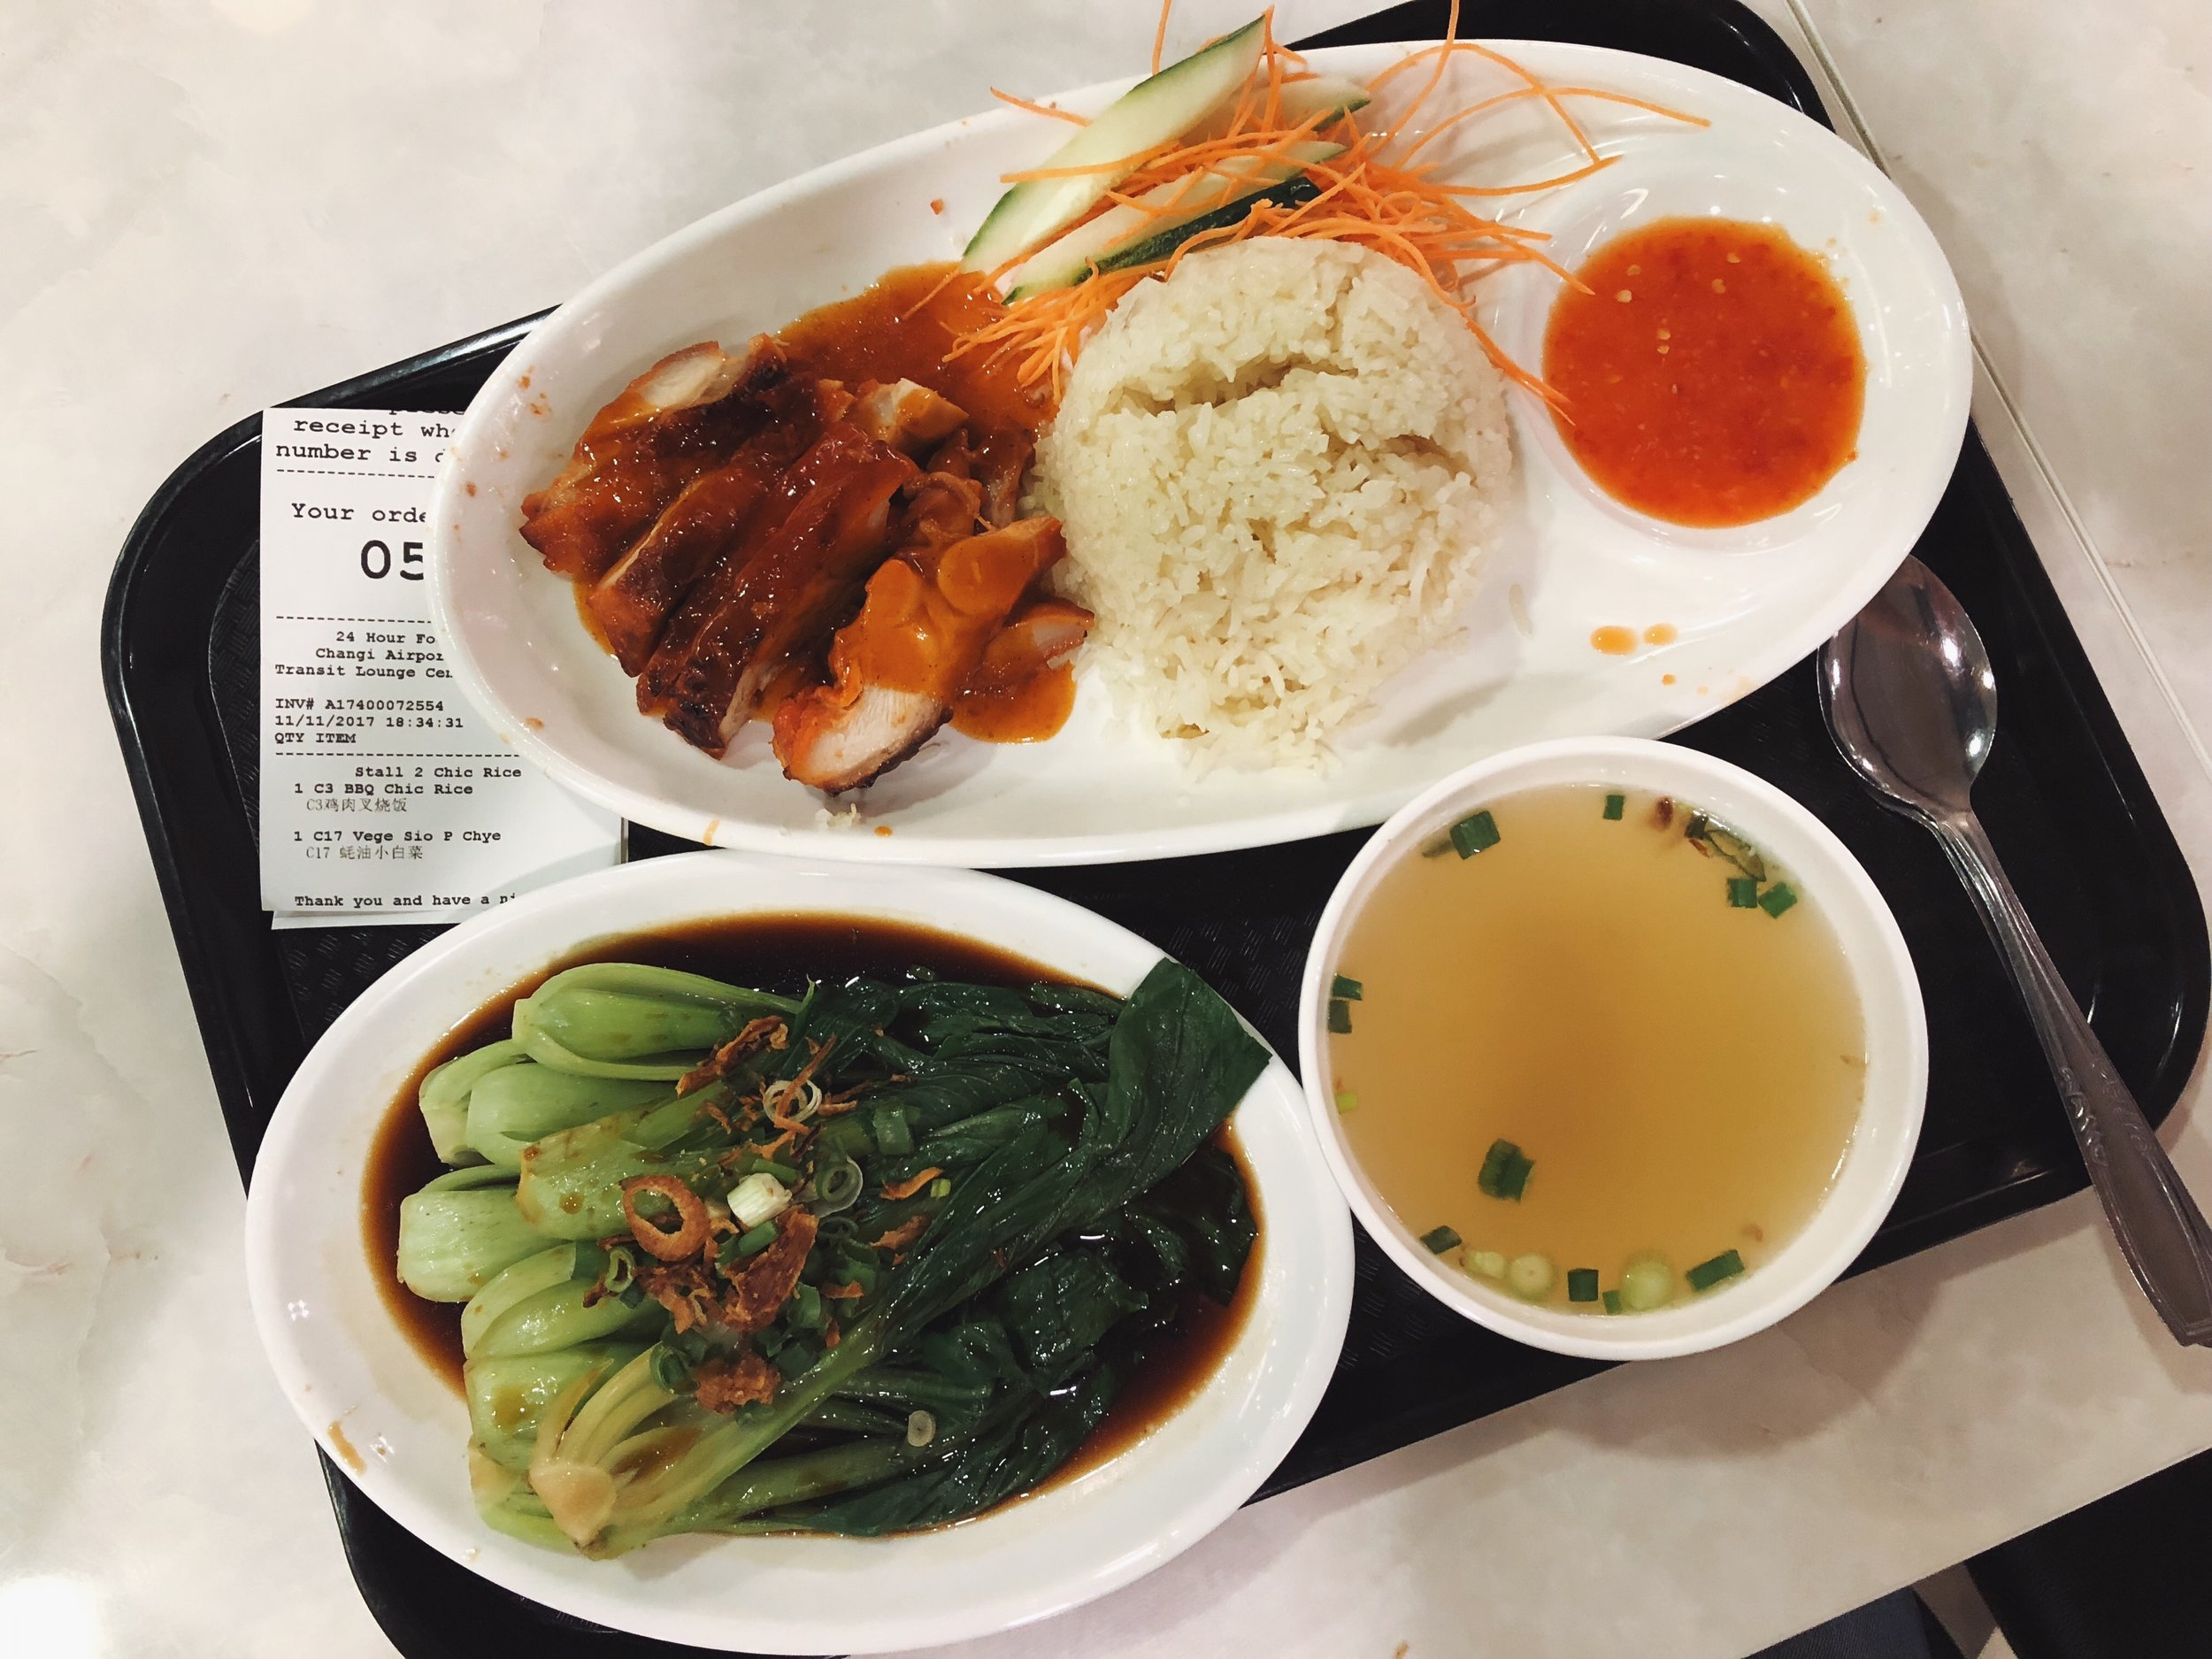 - Even after the 40 minute MRT ride back I had some time to spare in the airport, and indulged in more chicken rice.